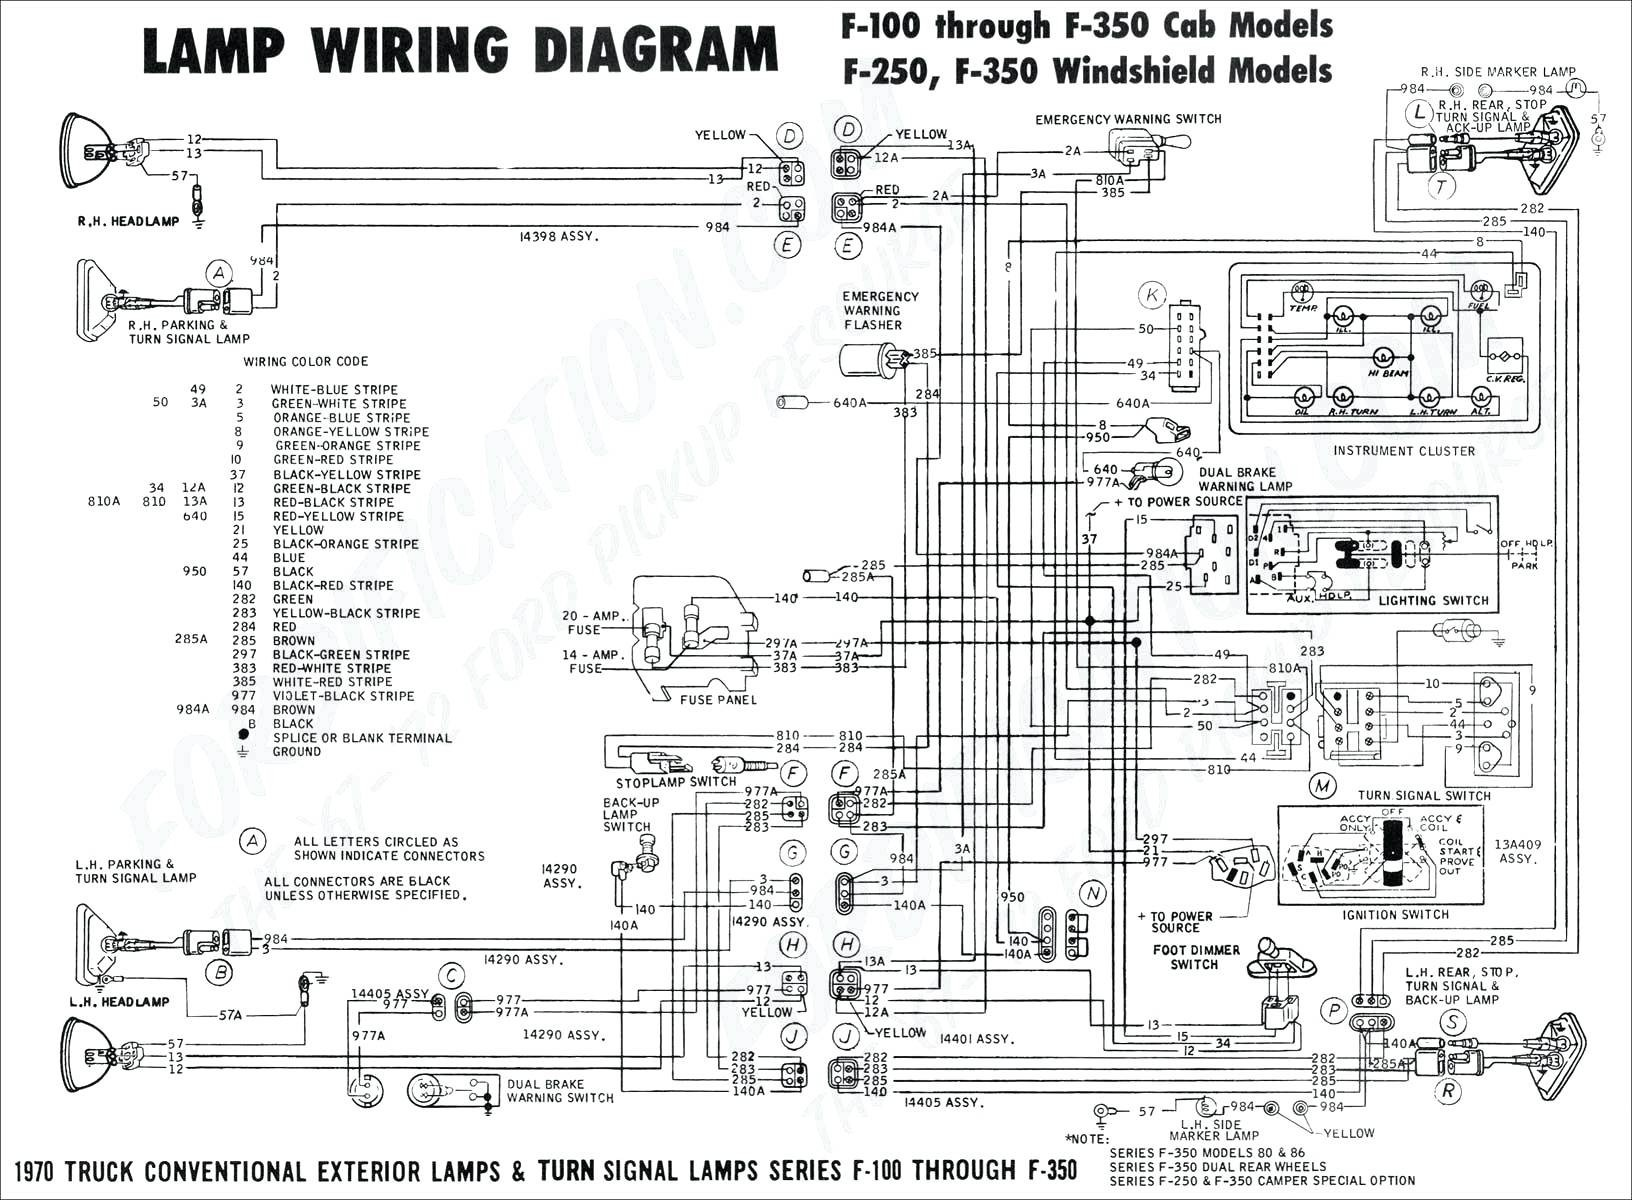 P 0900c1528008200e moreover RepairGuideContent as well 5d7w2 Chevrolet Truck 97 Chevy Silverado Will Not Shift as well 4 Wire Alternator Wiring Diagram In And Single additionally 1969 Chevy K10 Truck Wiring Diagram. on chevy nova wiring diagram